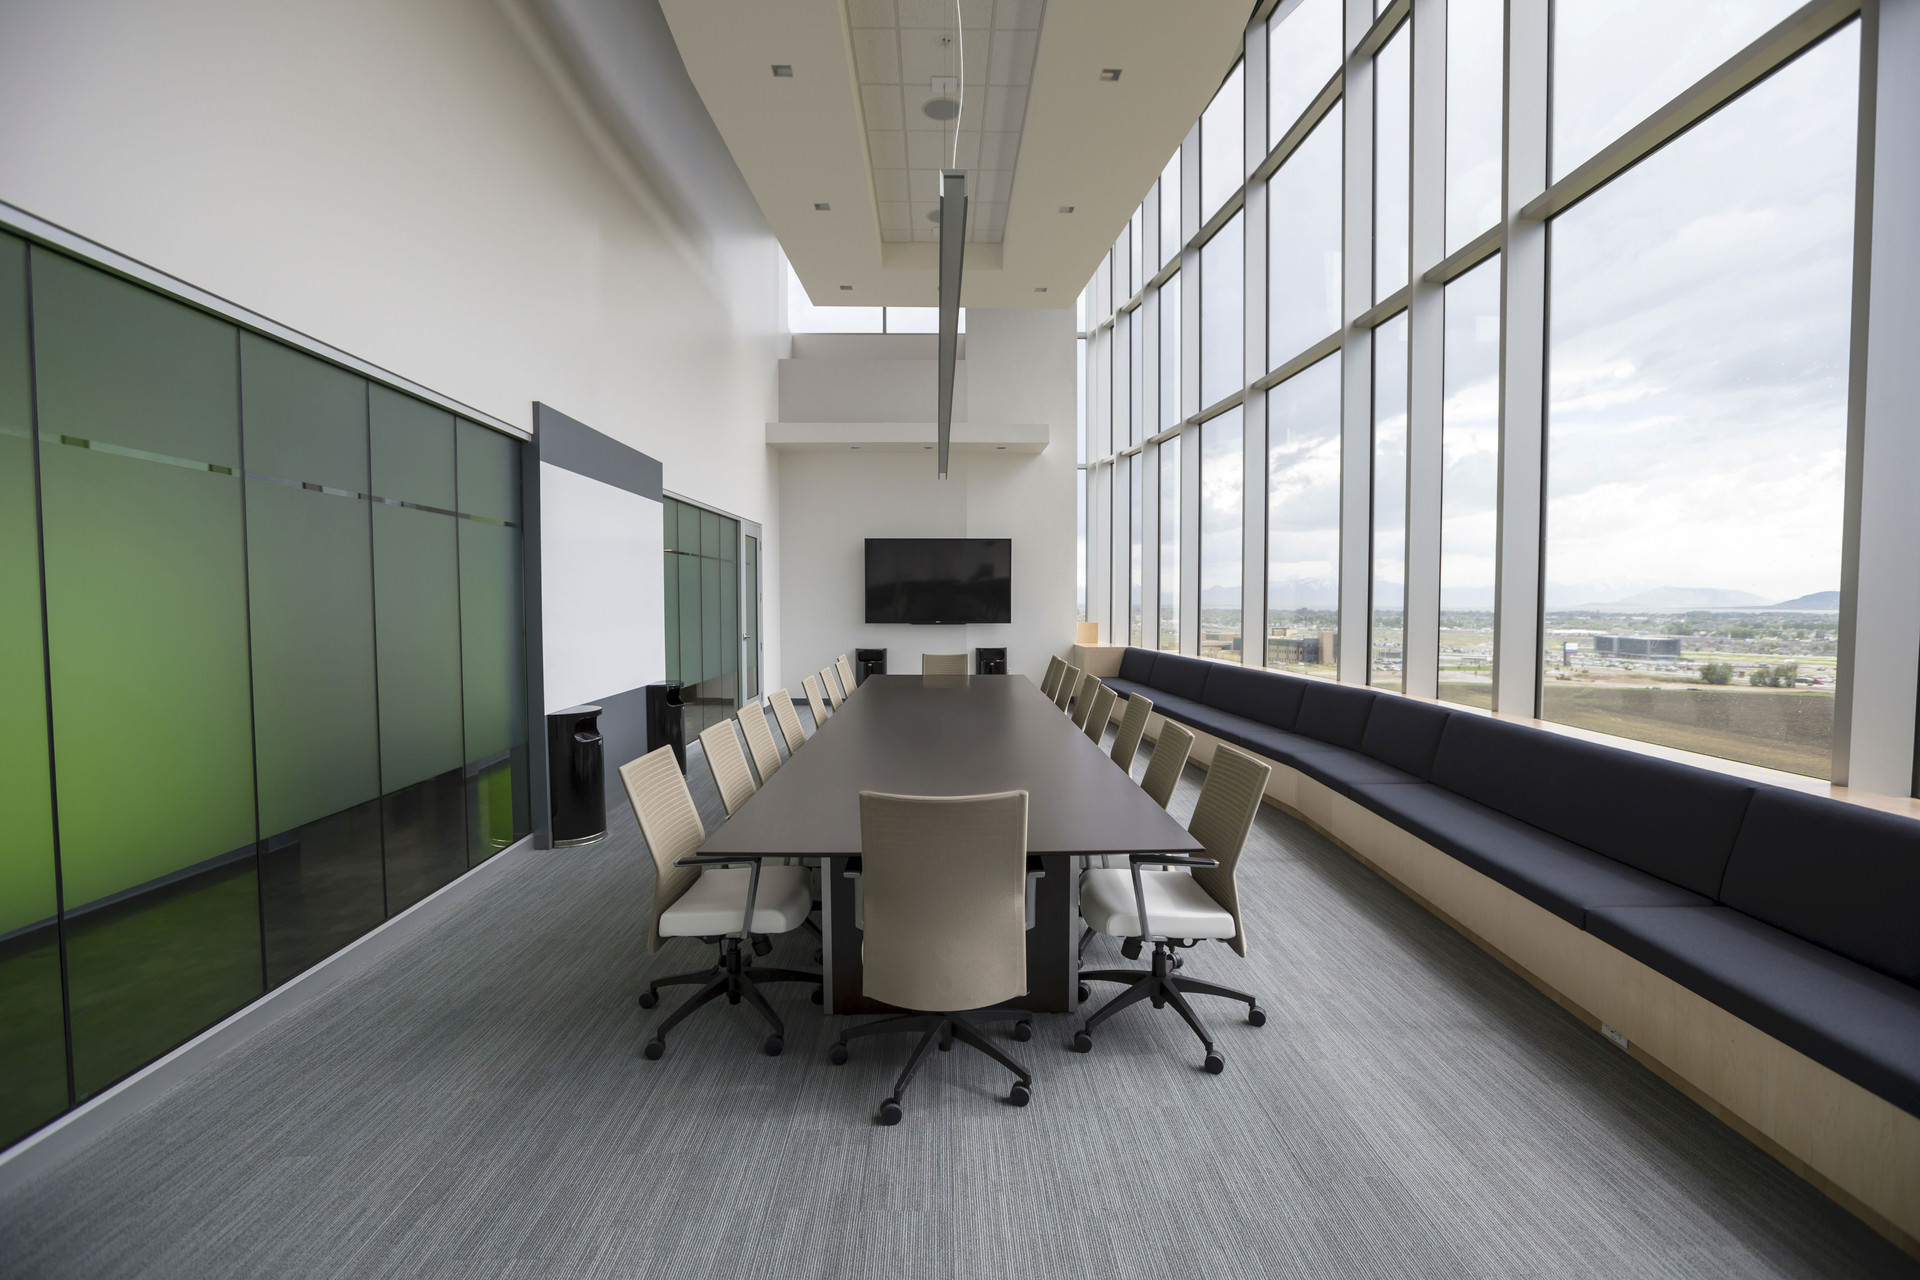 We can provide contract services   To clean mixed-use or open office spaces    Call 0141 212 2500    CLICK TO ARRANGE A CLEAN